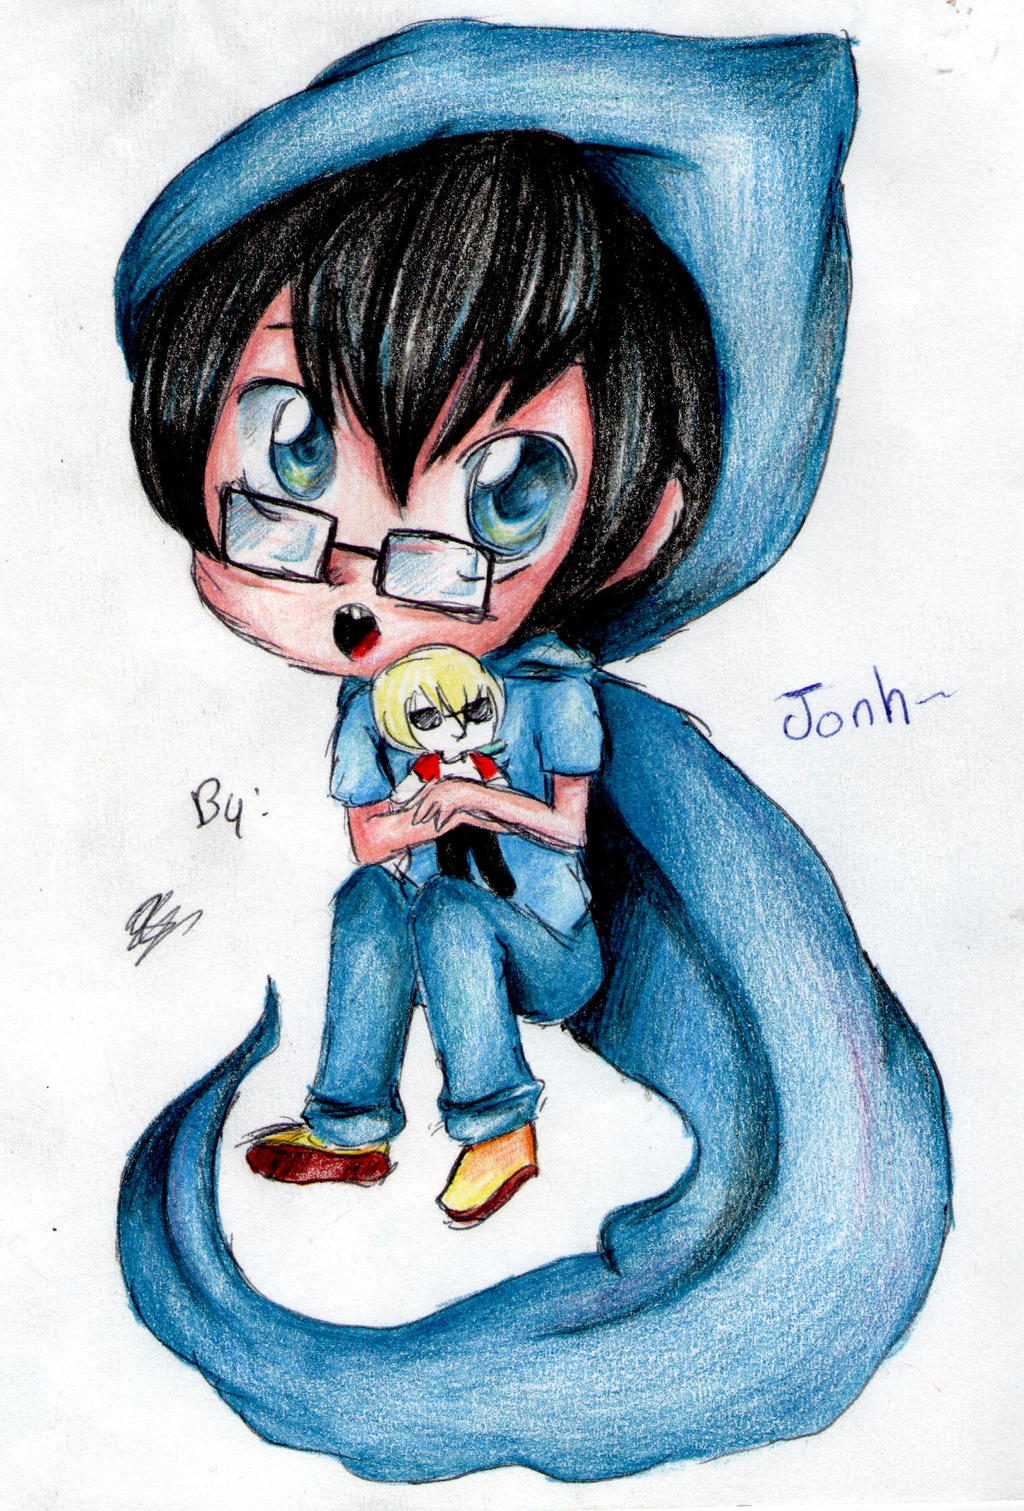 Jonh by alex-la-eriza